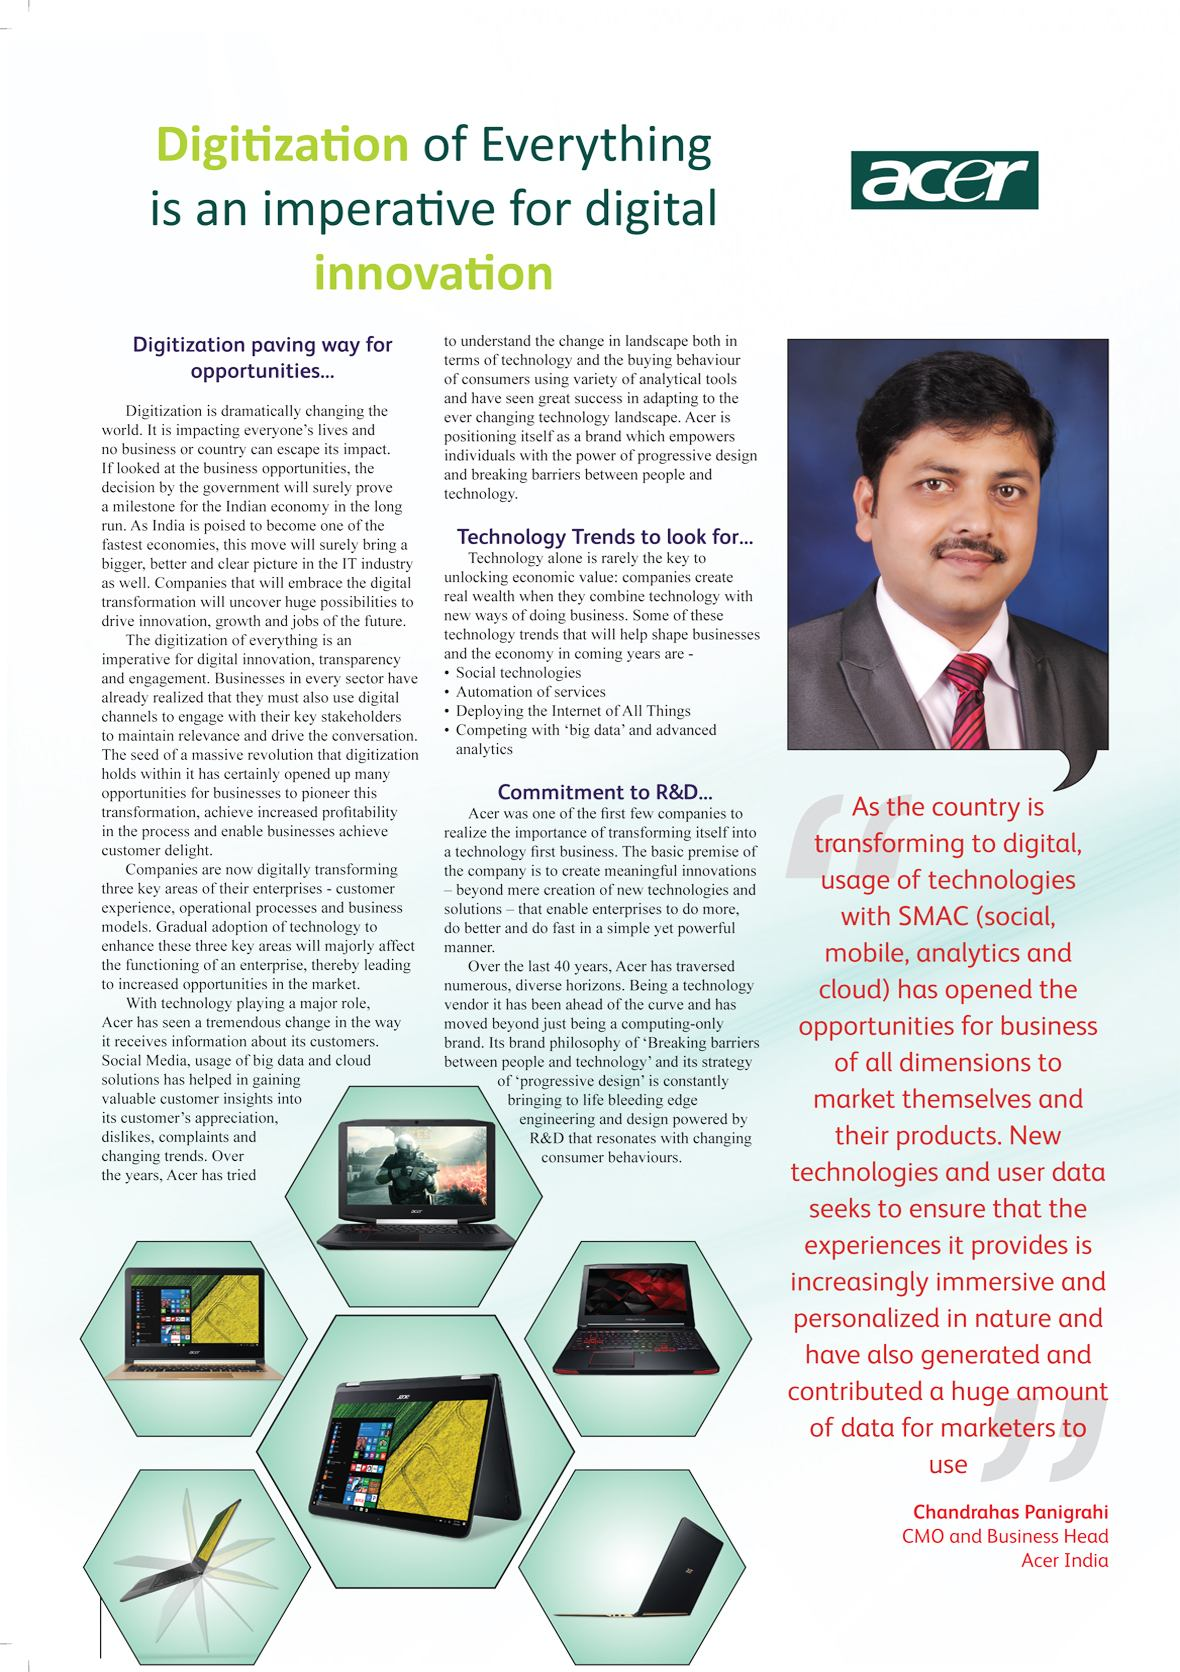 Acer India : Digitization of Everything is an imperative for digital innovation